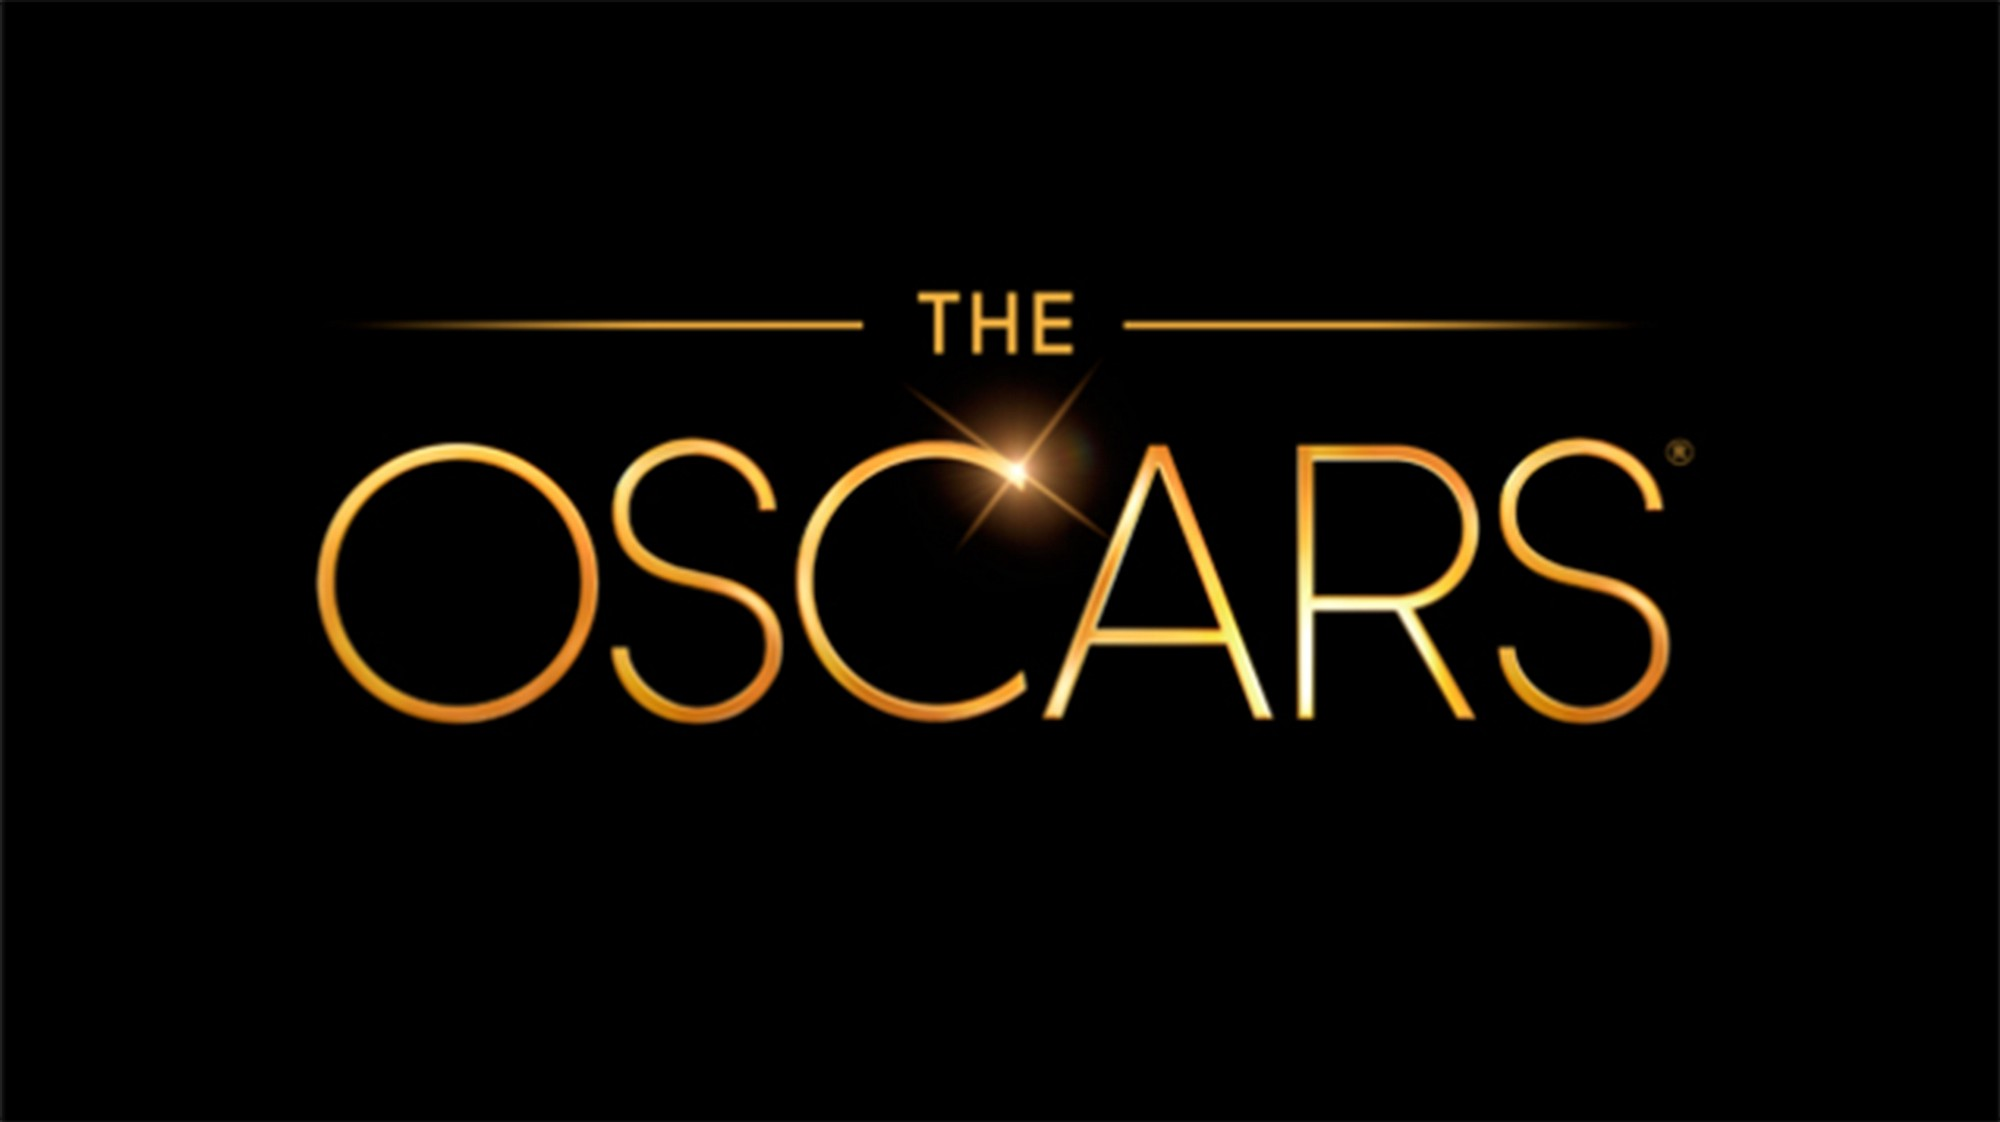 The Oscars ロゴ